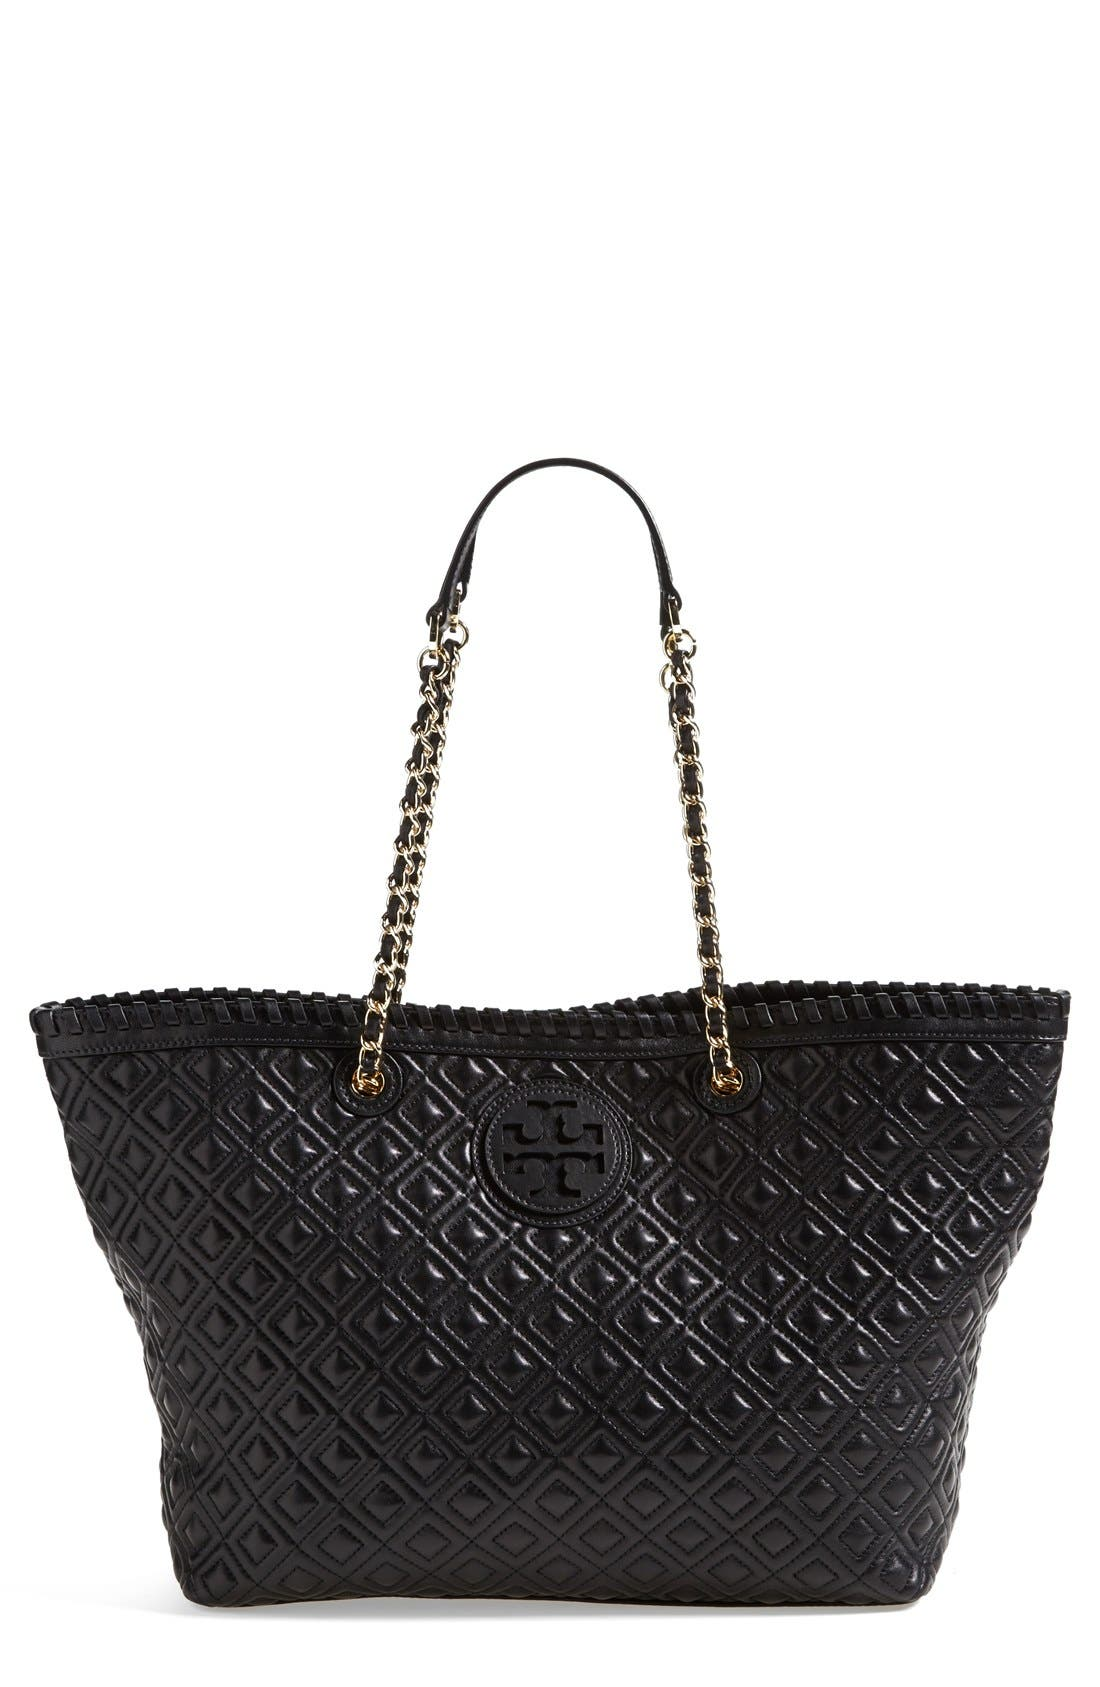 Main Image - Tory Burch 'Small Marion' Leather Tote